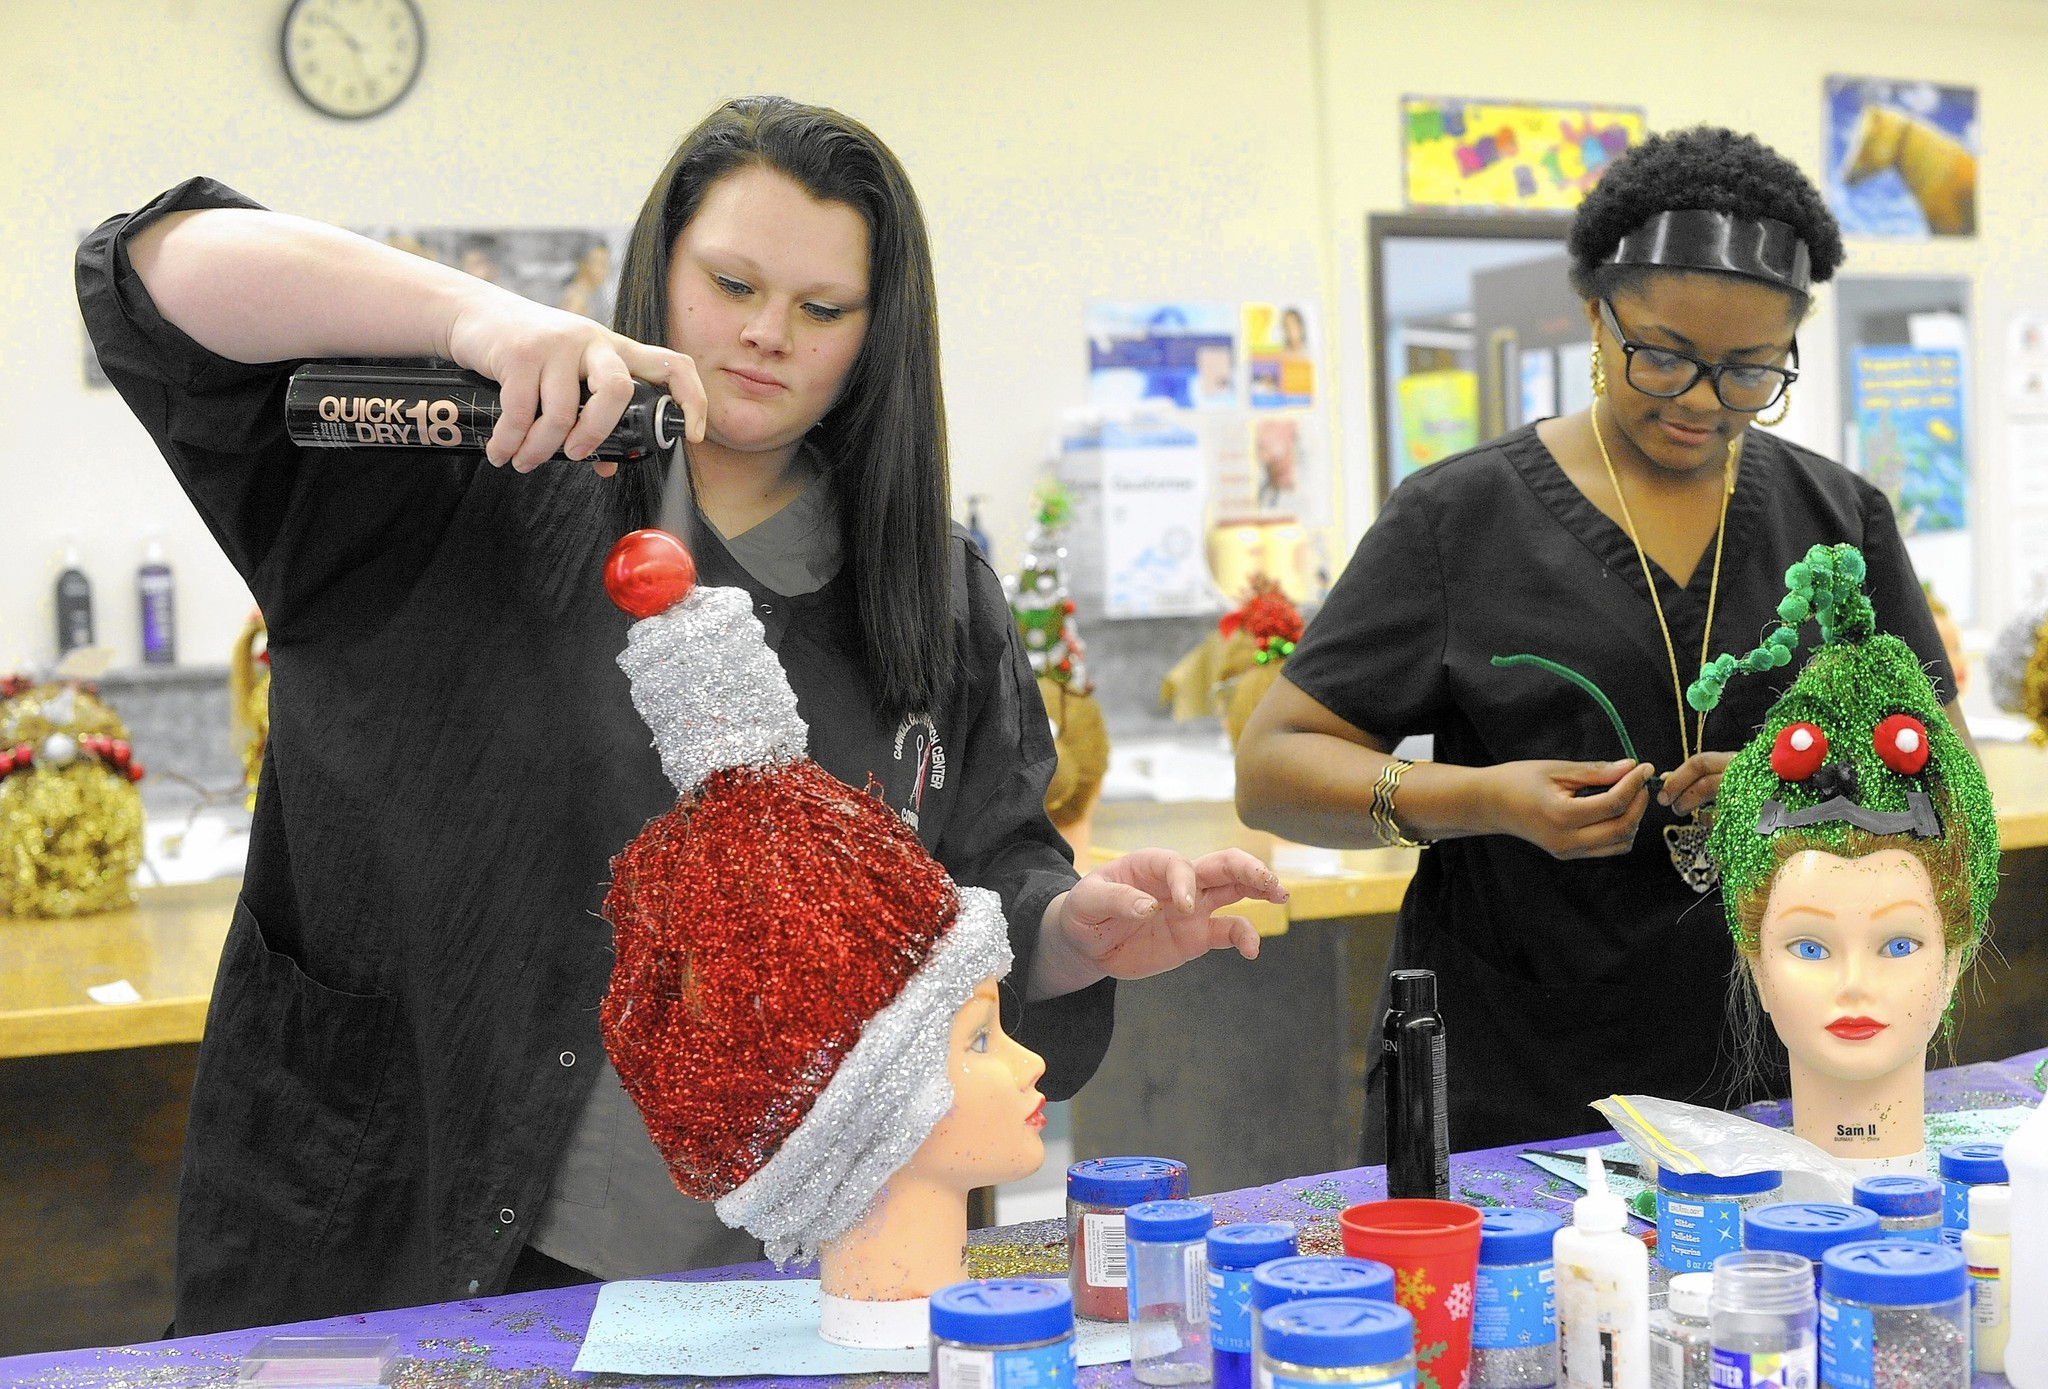 Tech Center cosmetology students craft Whoville,inspired